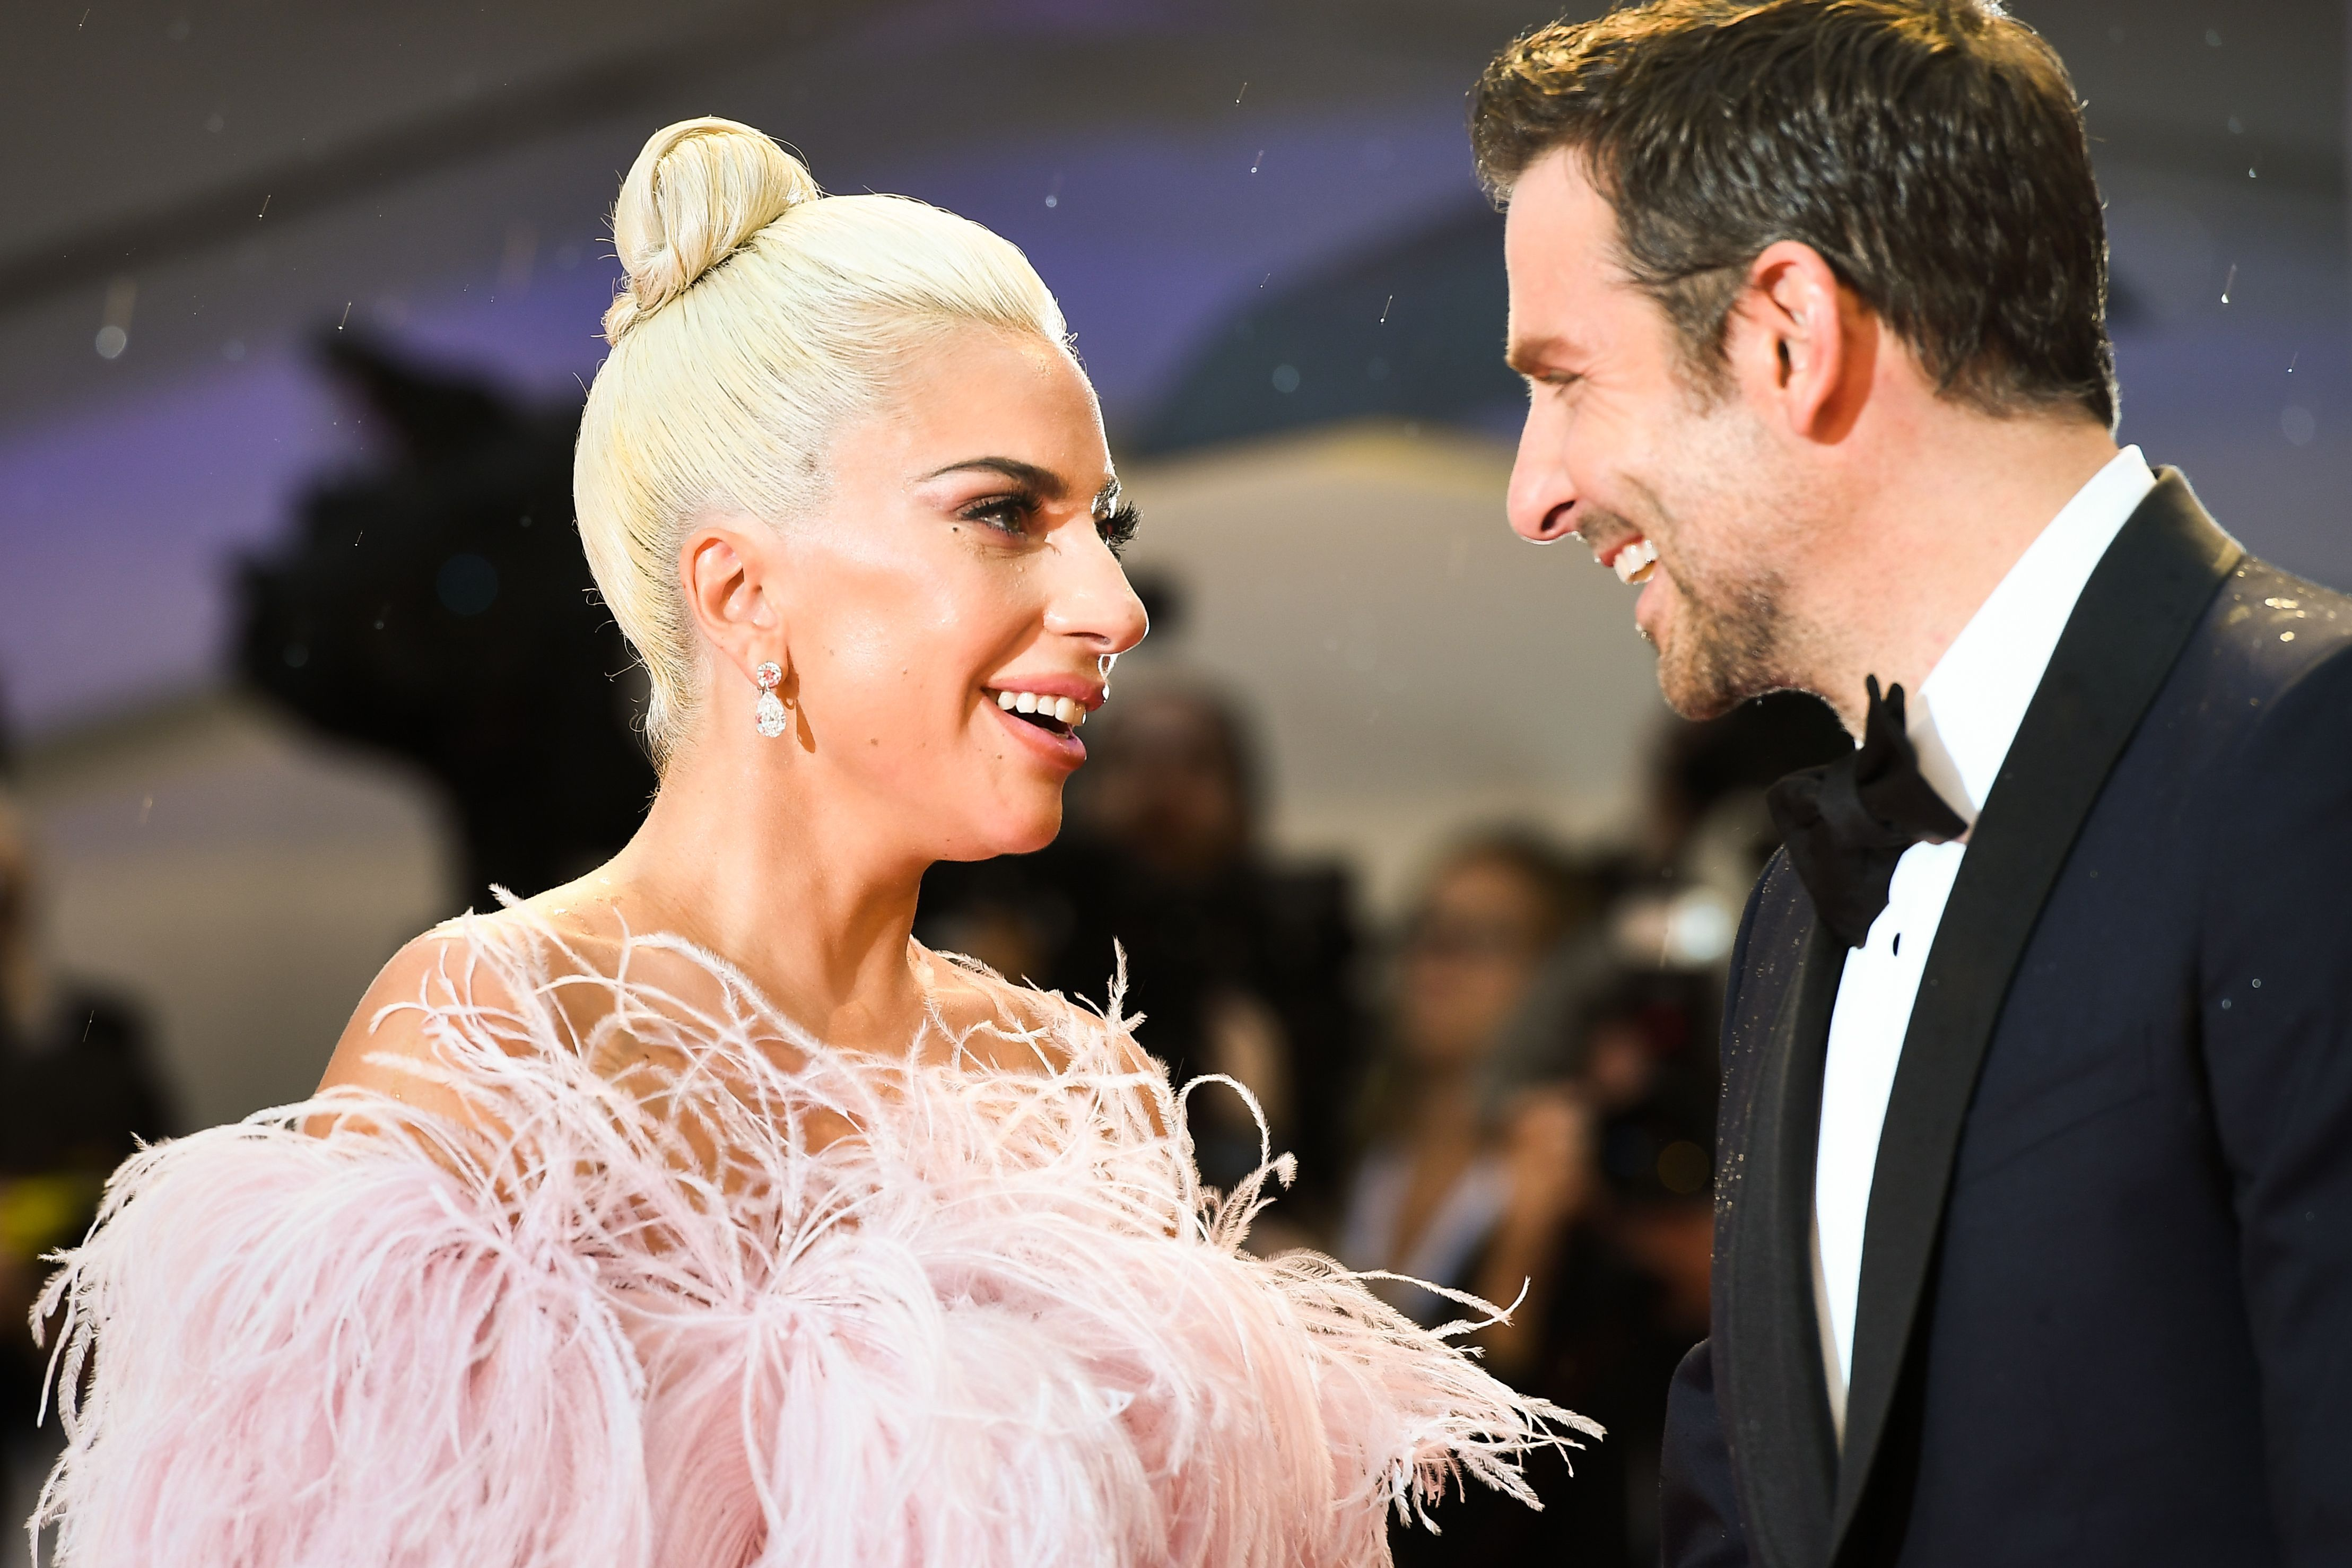 Lady Gaga Reportedly 'Isn't Going to Get Together' With Bradley Cooper After Irina Shayk Split